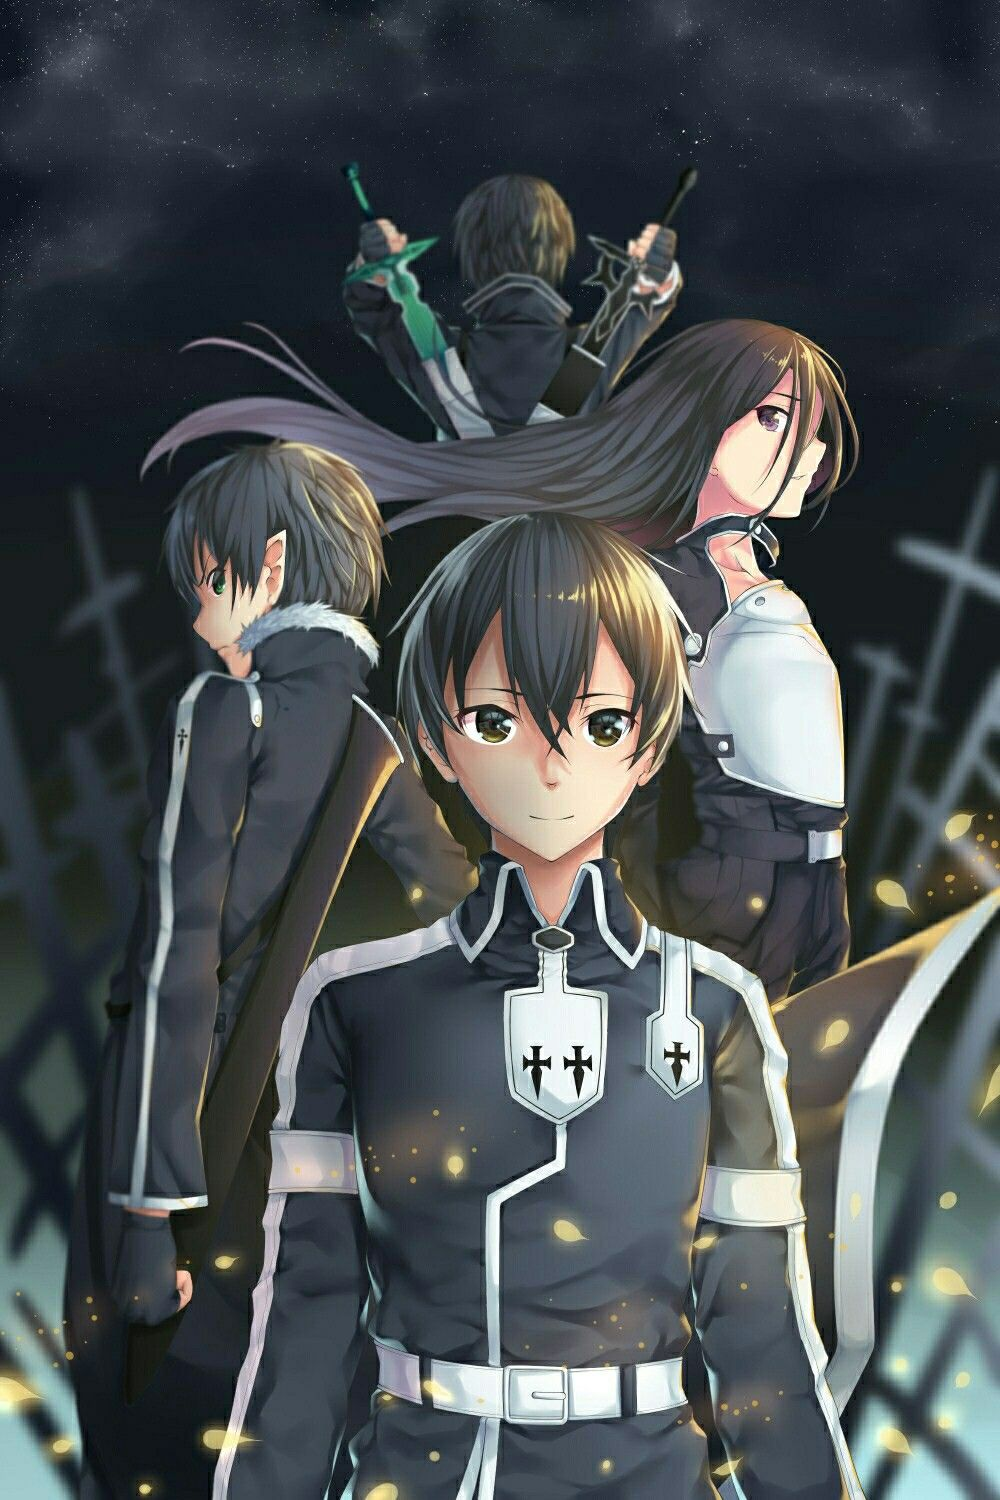 Kirito Is My Favourite Actor And My Fan Kirito Is My Hero In Sword Art Online Alicization Arte De Anime Personajes De Anime Dibujos De Anime